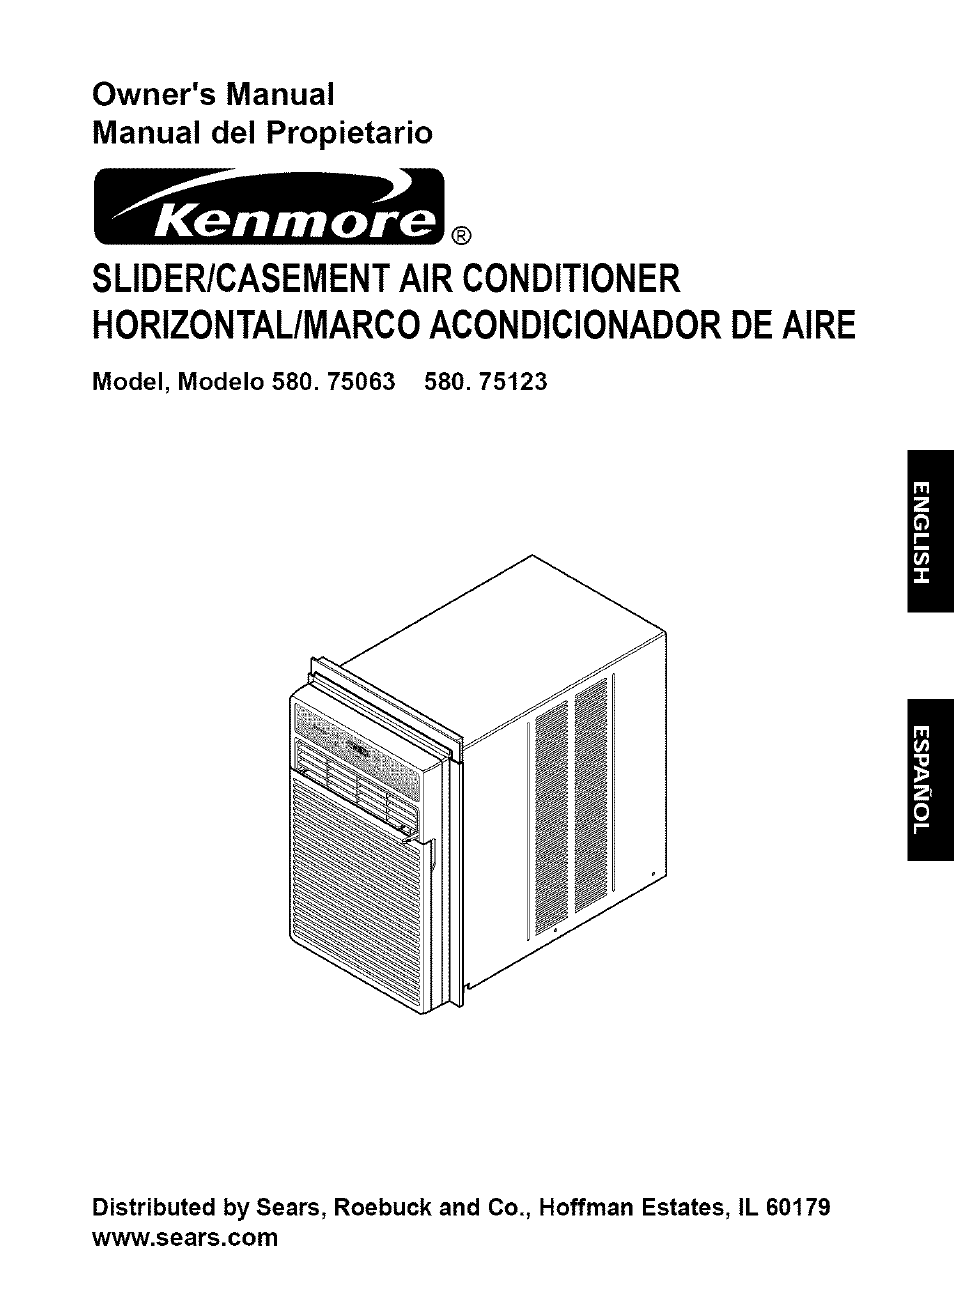 Kenmore 580. 75063 User Manual | 32 pages | Also for: 580.75123